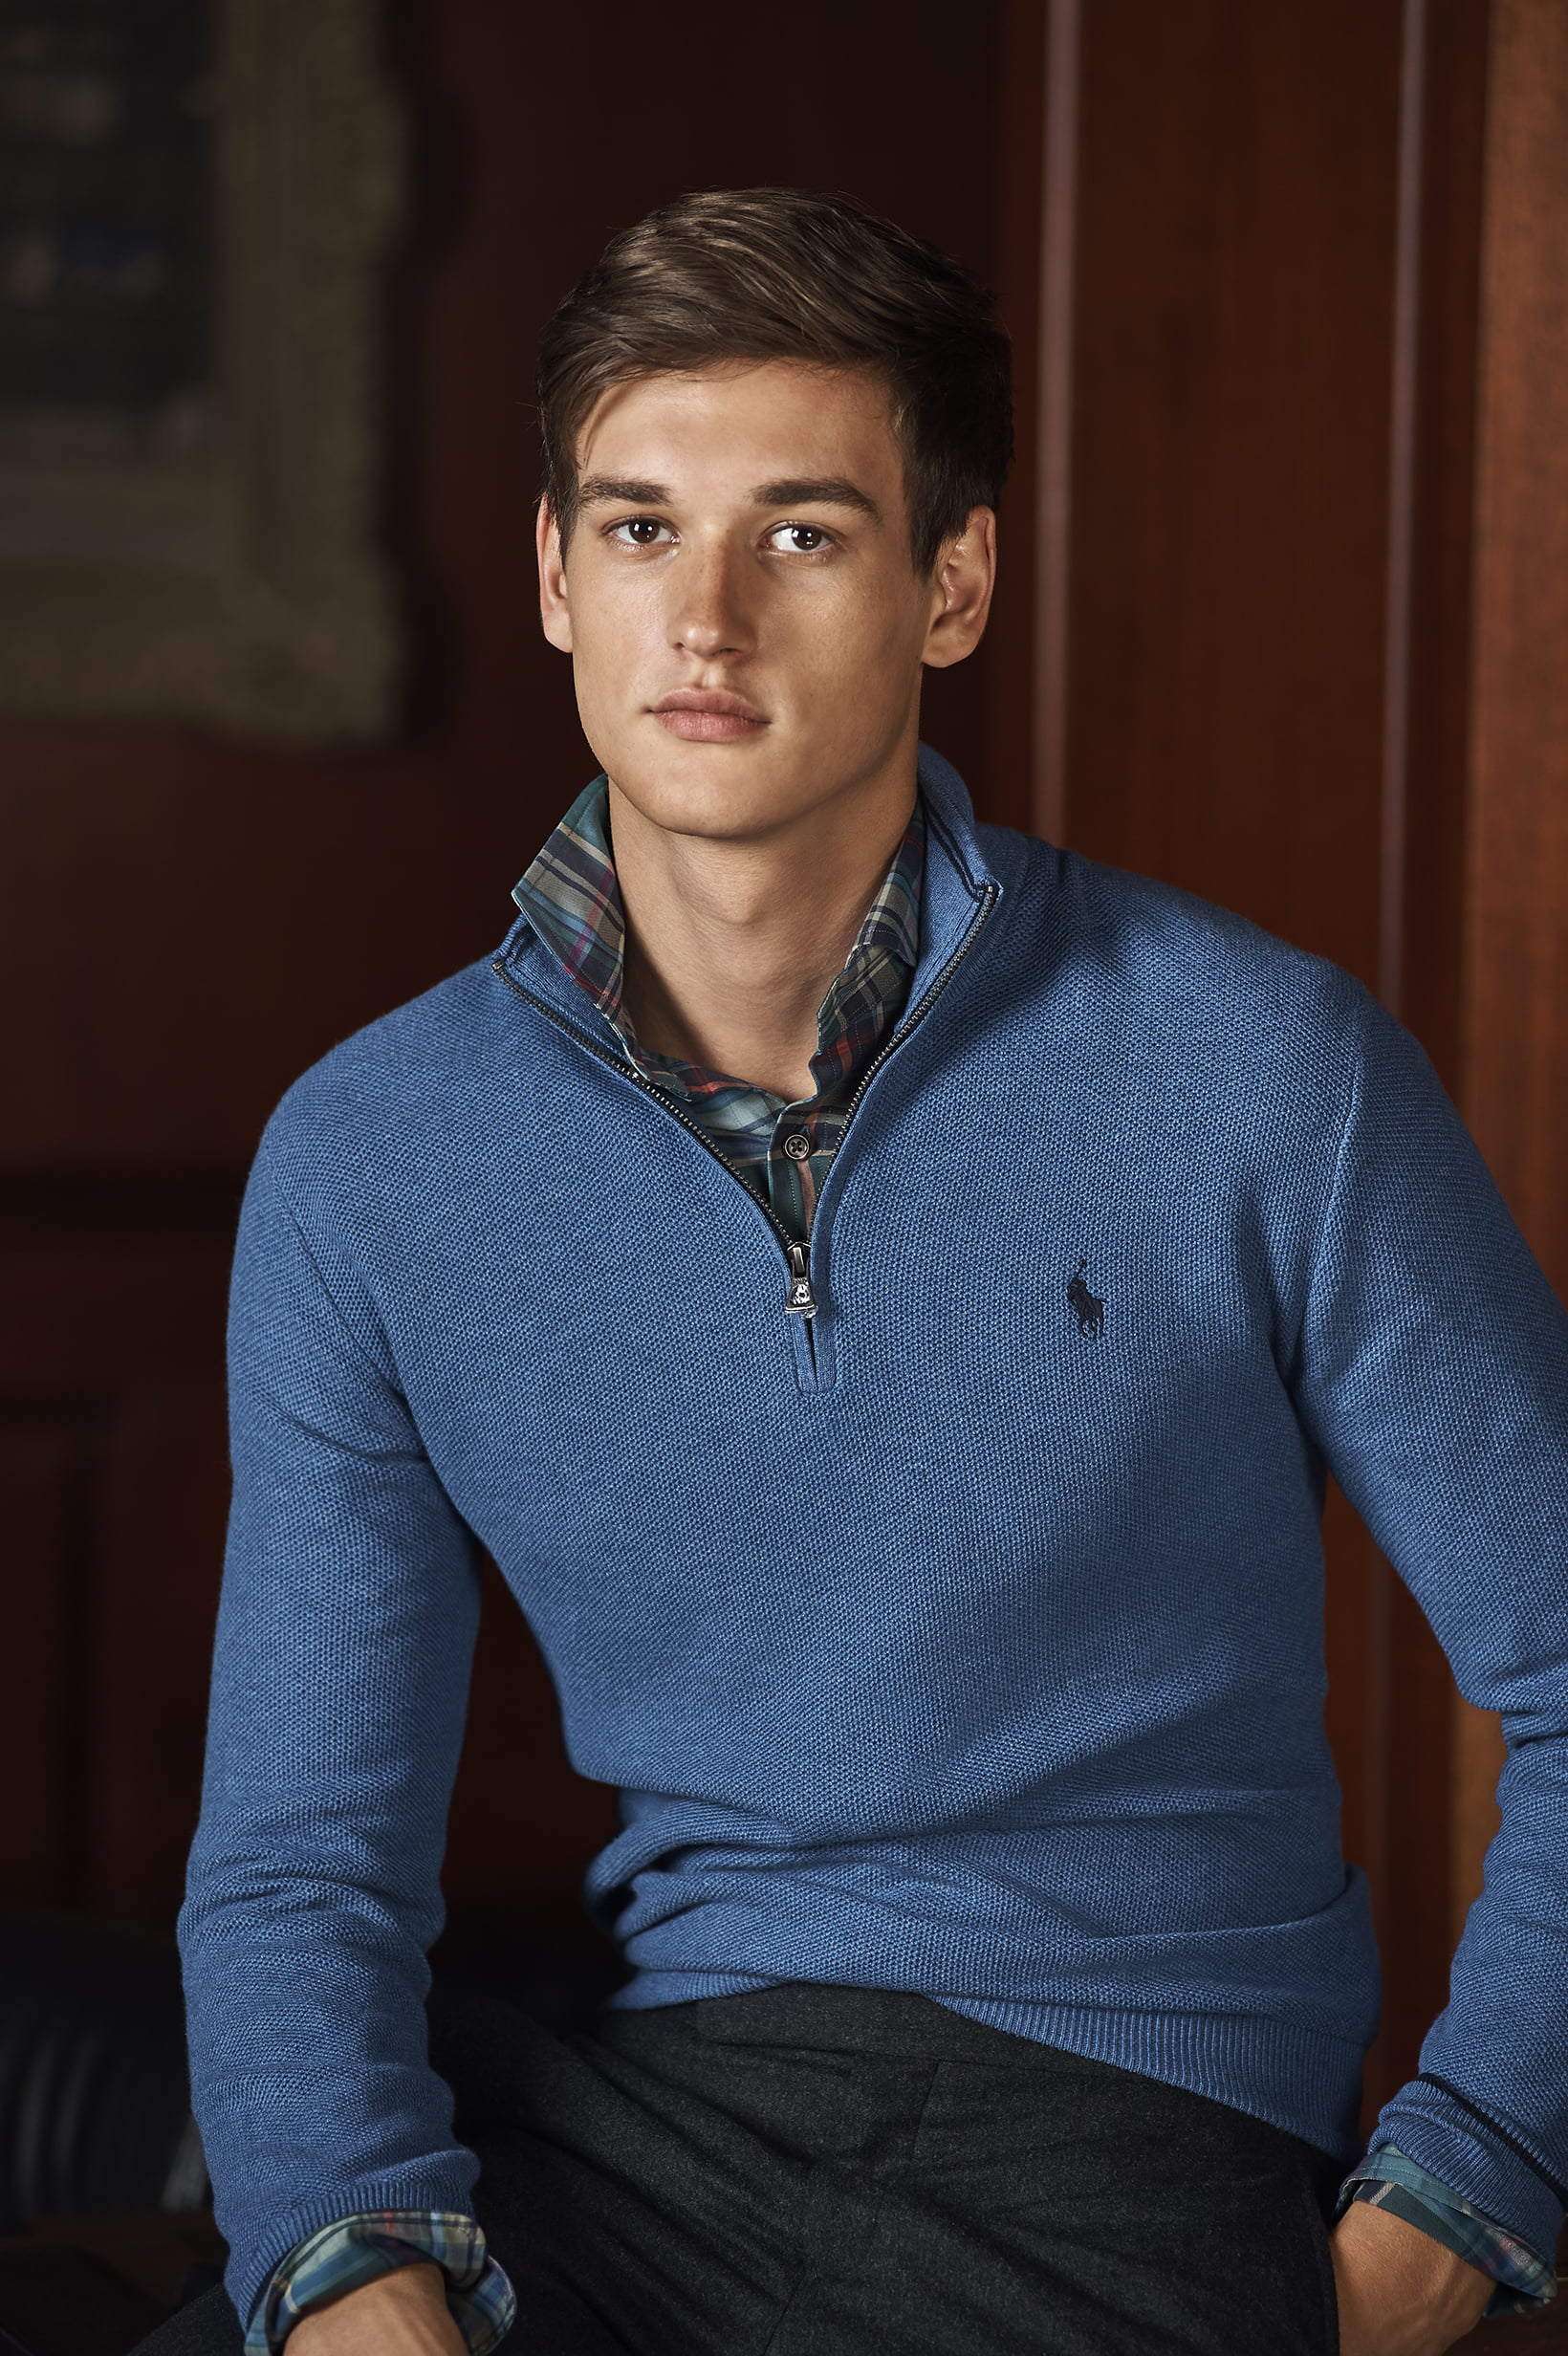 Polo Ralph Lauren News, Collections, Fashion Shows